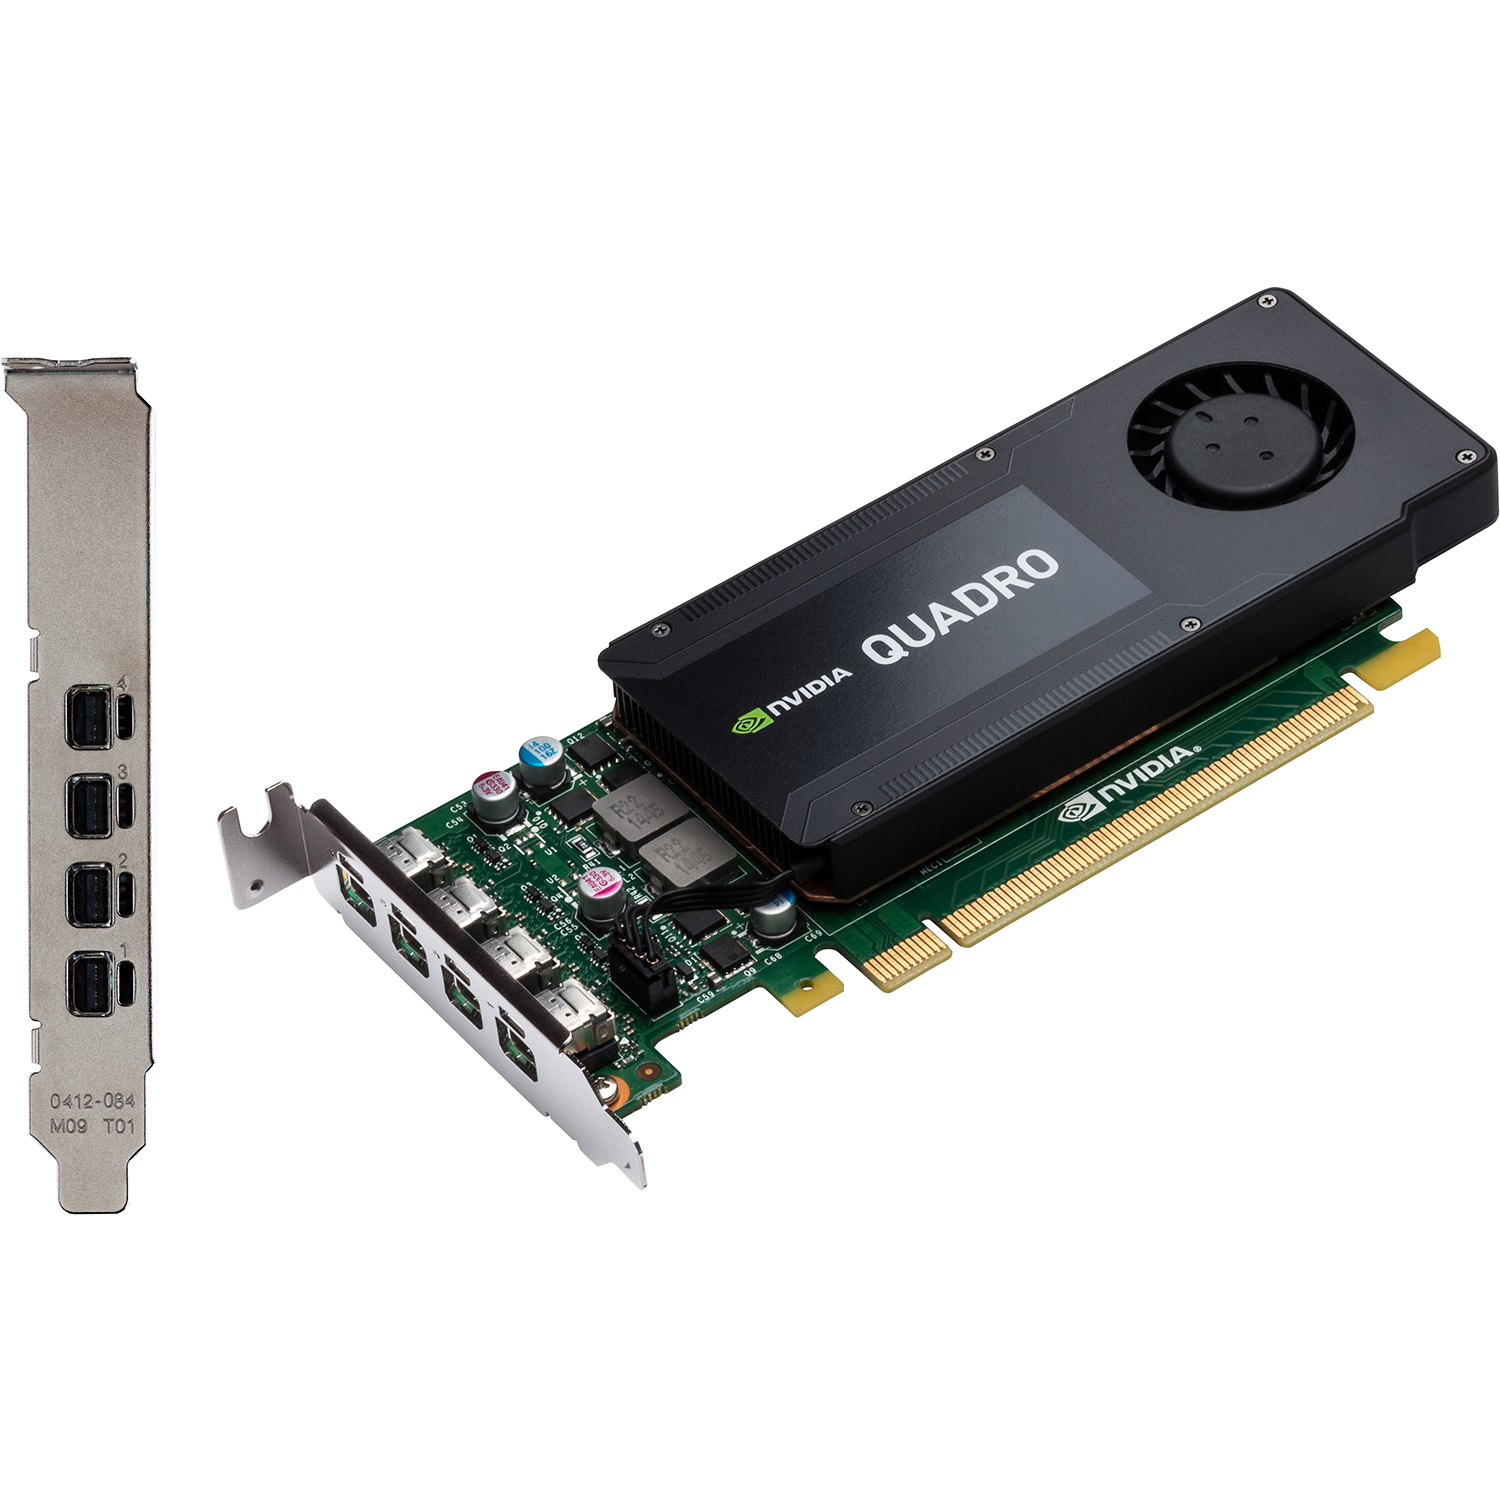 nvidia quadro k1200 accelerate your creativity the quadro k1200 offers